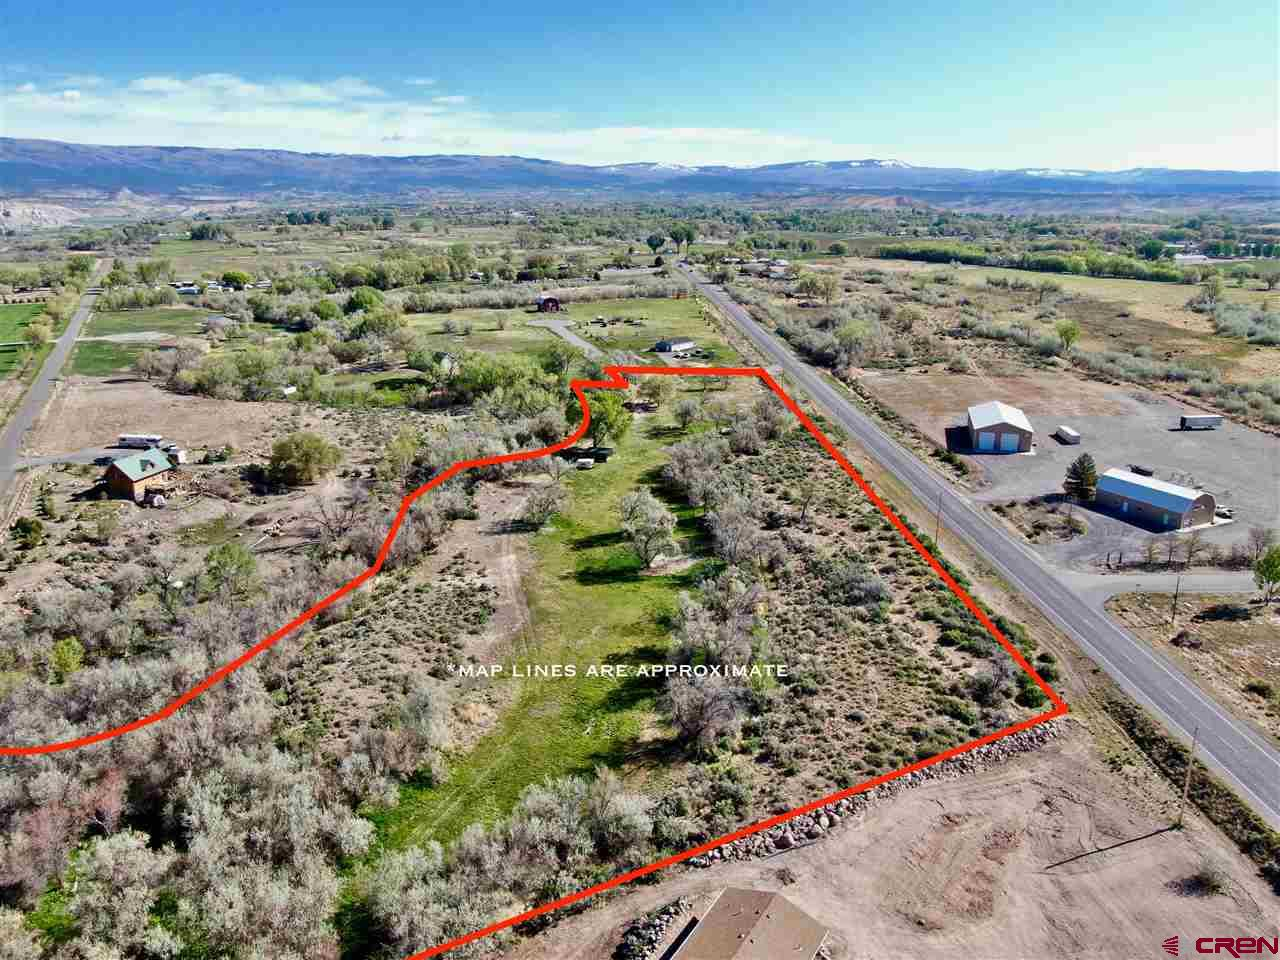 Residential / Commercial Development Land For Sale -- Ideal Building Site   This 8.39 approximate acres is located between the towns of Delta and Cedaredge, Colorado, on the southern slopes of the Grand Mesa. With Highway 65 running along the eastern border, and surface creek as the western border, easy access and a calm setting are just minutes from town. All utilities in place, high speed internet, phone, natural gas, electric. Irrigation and water rights with multiple CREEKSIDE building sites, with abounding views all around. Limited HOA/Covenants make this a great building site.   Zoned Residential OR Commercial, with restrictions on daily traffic amounts and noise levels. Great for small businesses looking for home & shop to conduct business. This 8.39-acre parcel may also be further subdivided in the future.   This 8.3 acres is water front to Surface Creek, and part of the Running Deer Estates subdivision, with new construction appearing. This vacant land for sale is mixed use, with the option to utilize a limited commercial use on the property as well as residential. One of the largest parcels of the subdivison, this property would be an ideal setup for horses or other agricultural animals, with approximately 4 irrigated acres, creek & highway frontage, and diverse terrain with multiple homesites. Property comes equipped with a Town of Orchard City water tap, and access to DMEA electric and Black Hills energy natural gas. Building your horse property or country home in a convenient location has never been easier.